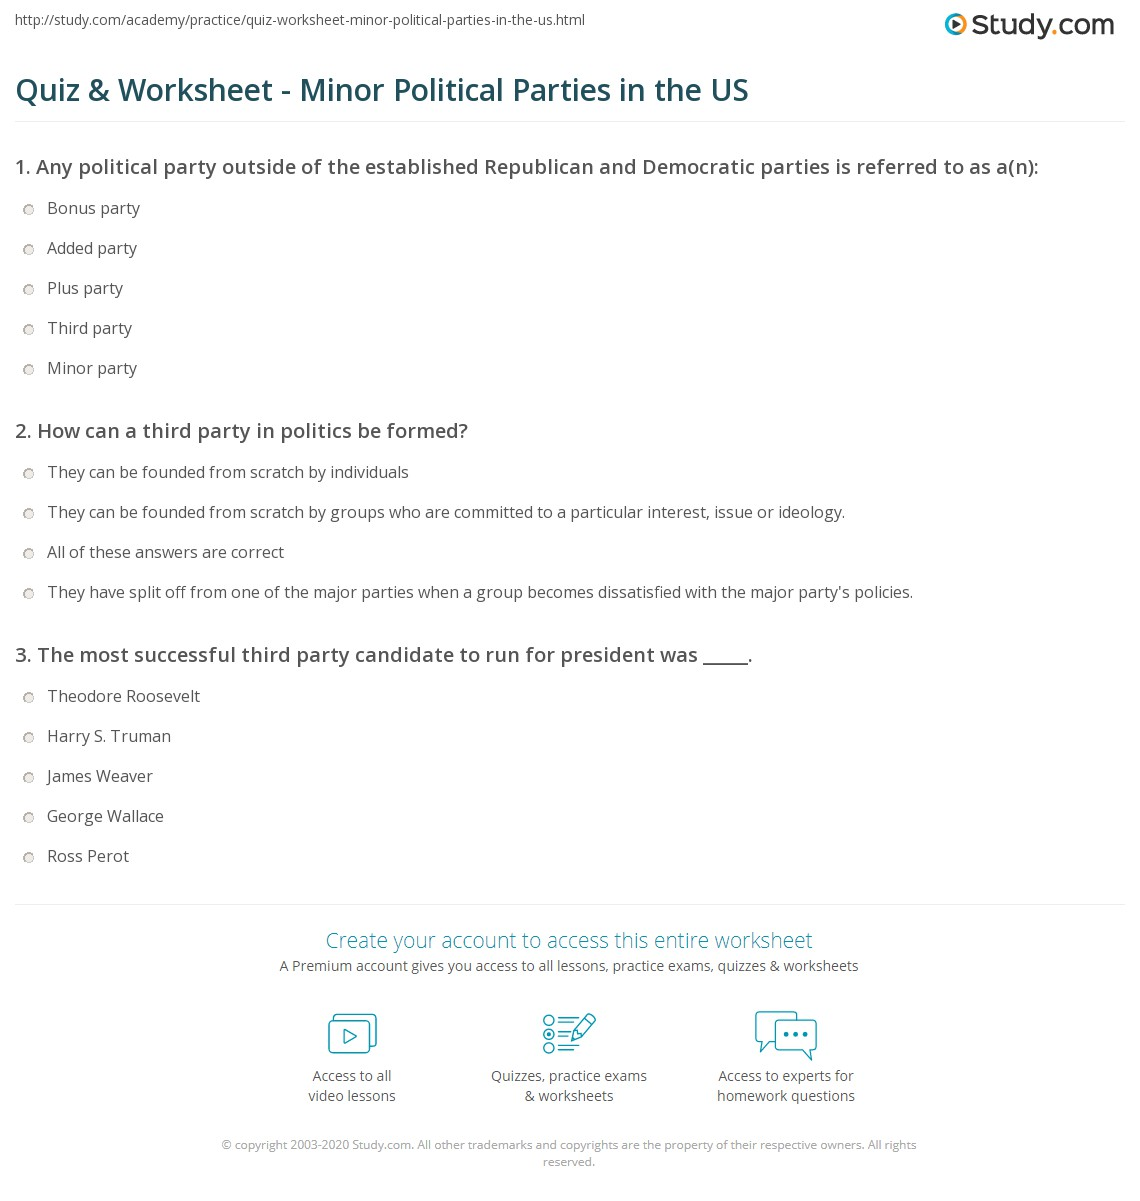 Gallup Poll Worksheet Answers Sharebrowse – Dying to Be Thin Worksheet